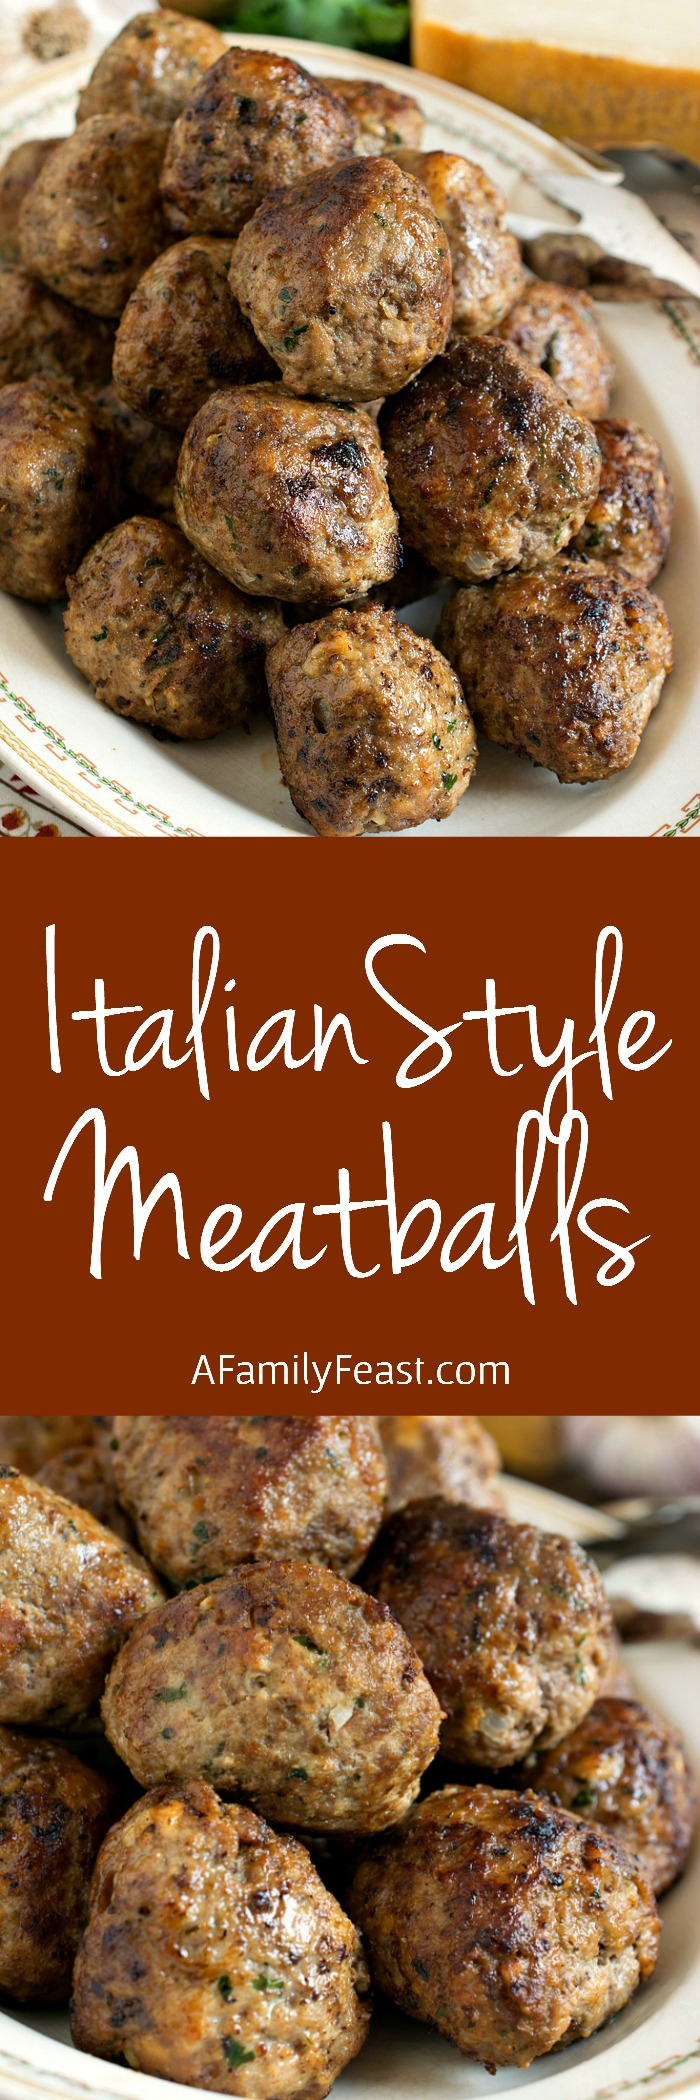 A classic recipe for Italian-Style Meatballs - moist and delicious on their own or served with your favorite Italian sauce. A recipe everyone should have in their collection!